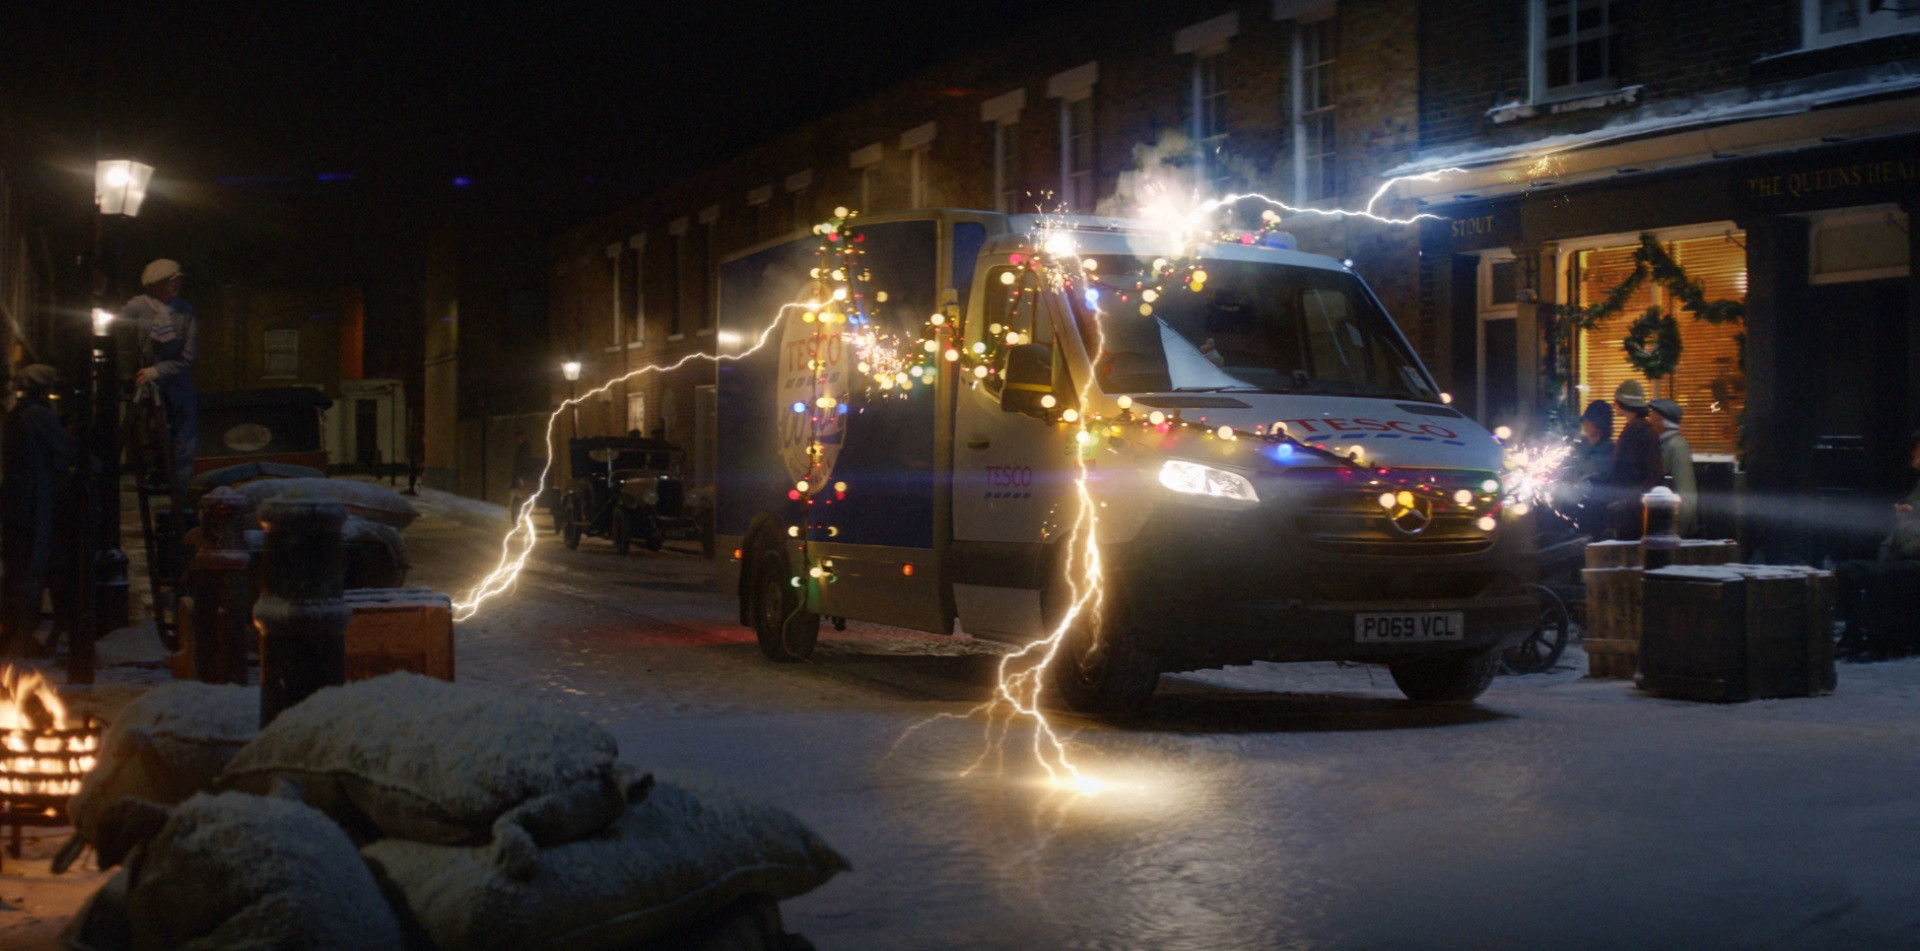 Tesco is taking a trip down memory lane for this year's Christmas advert to celebrate 100 years since it was founded